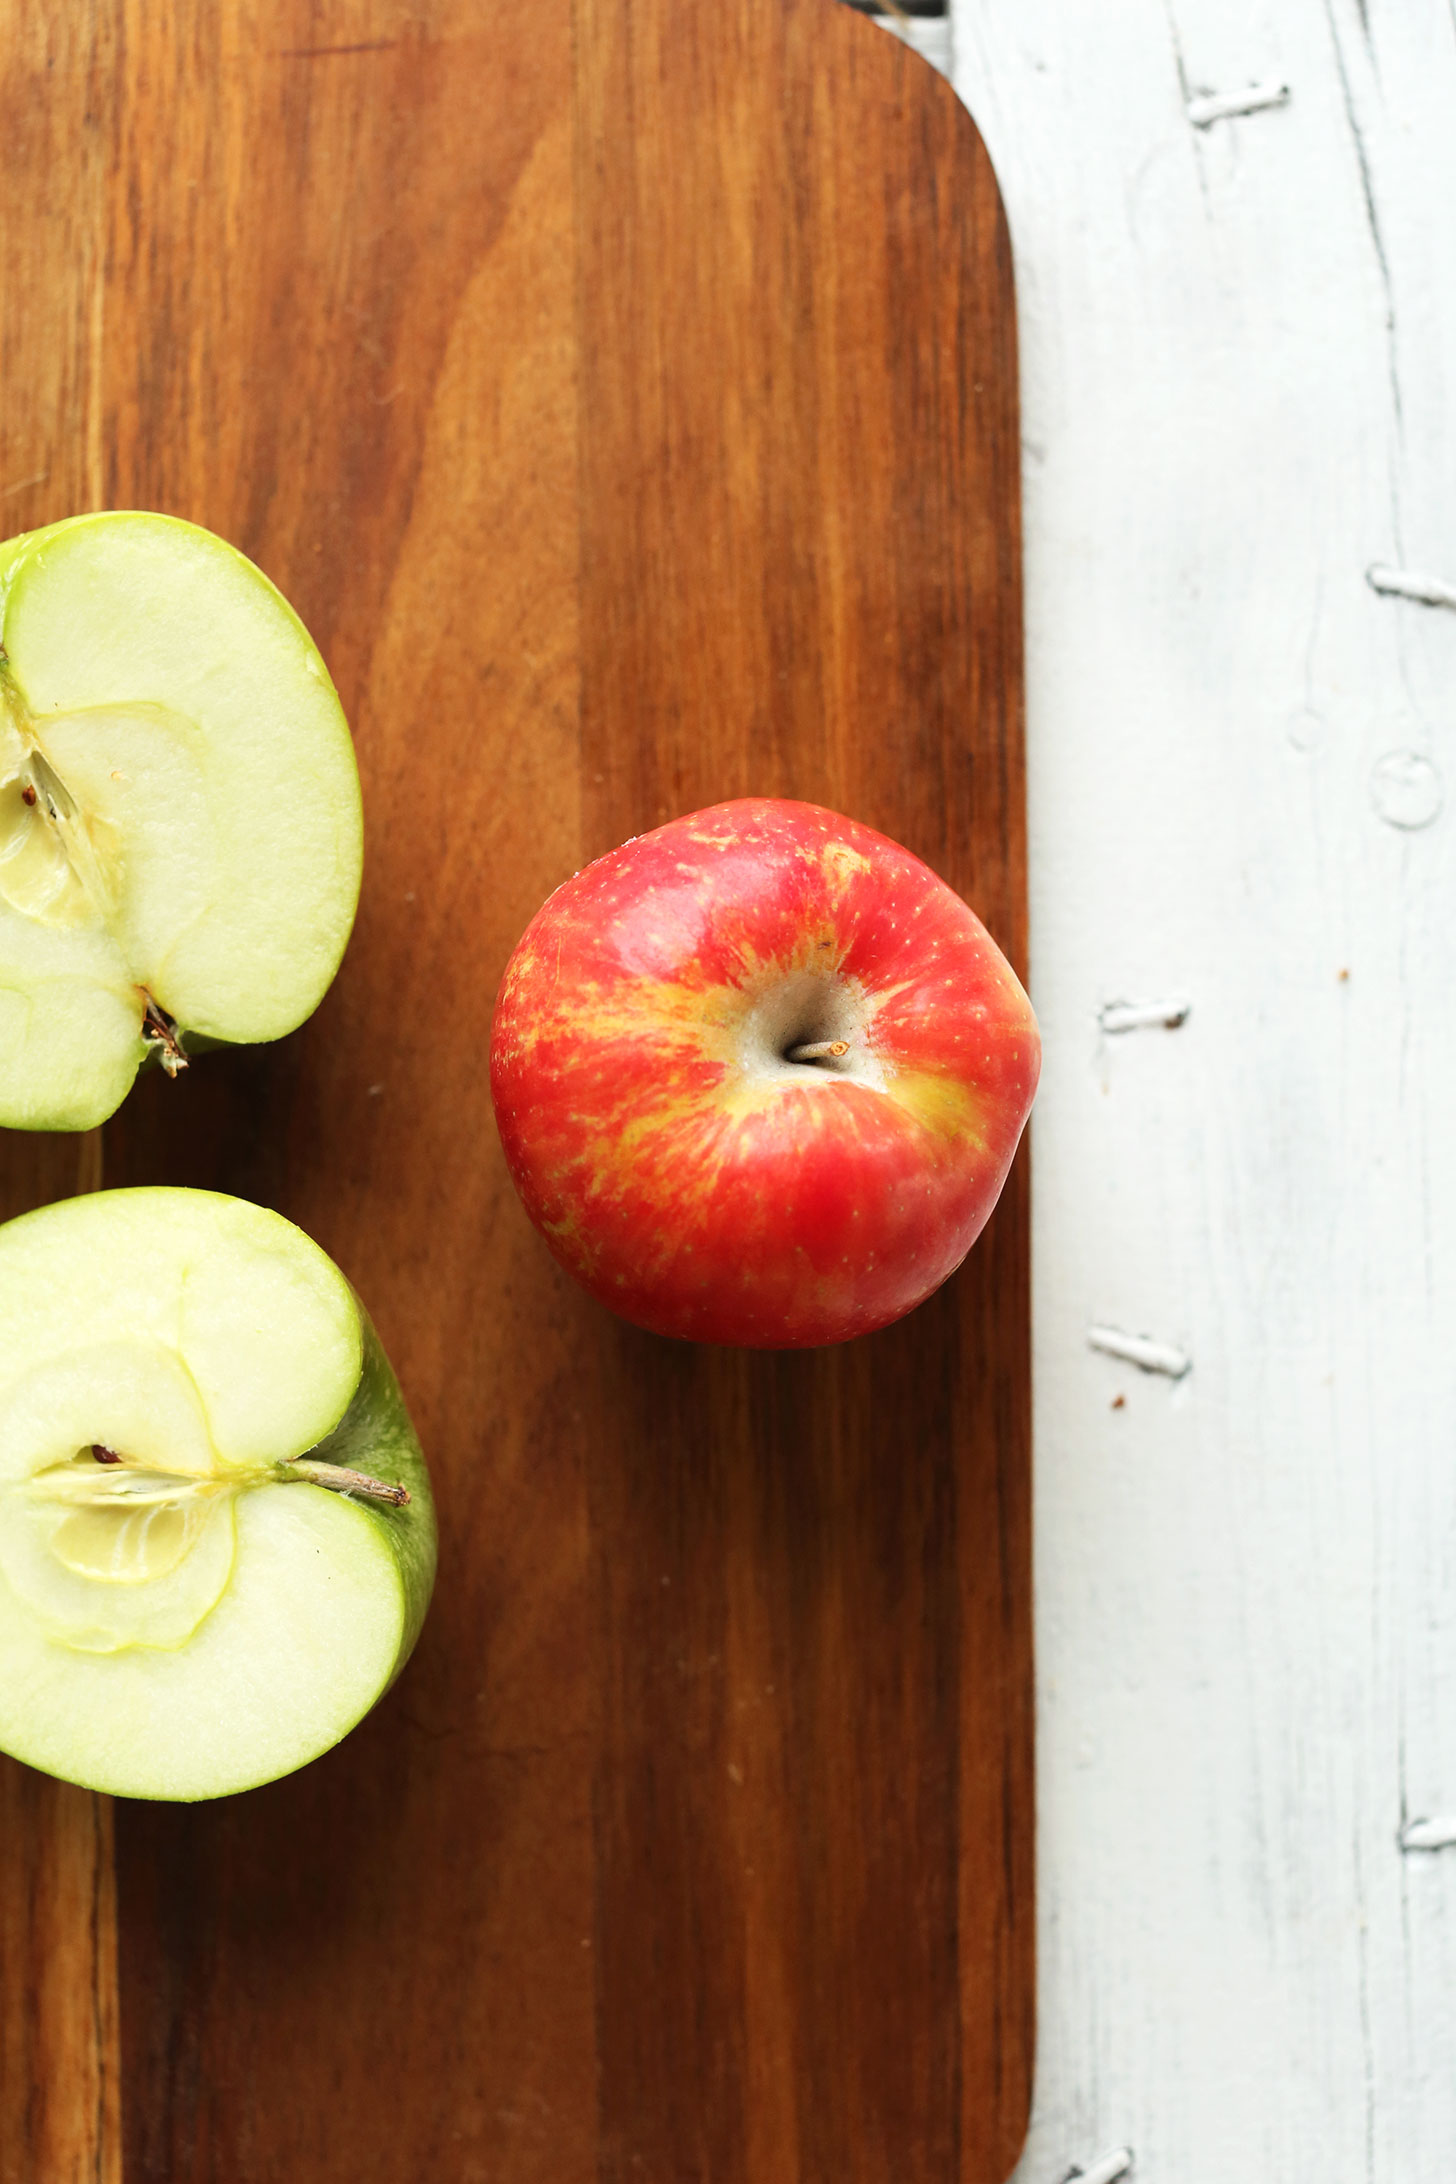 Cutting board with apples for making a healthy fall salad recipe